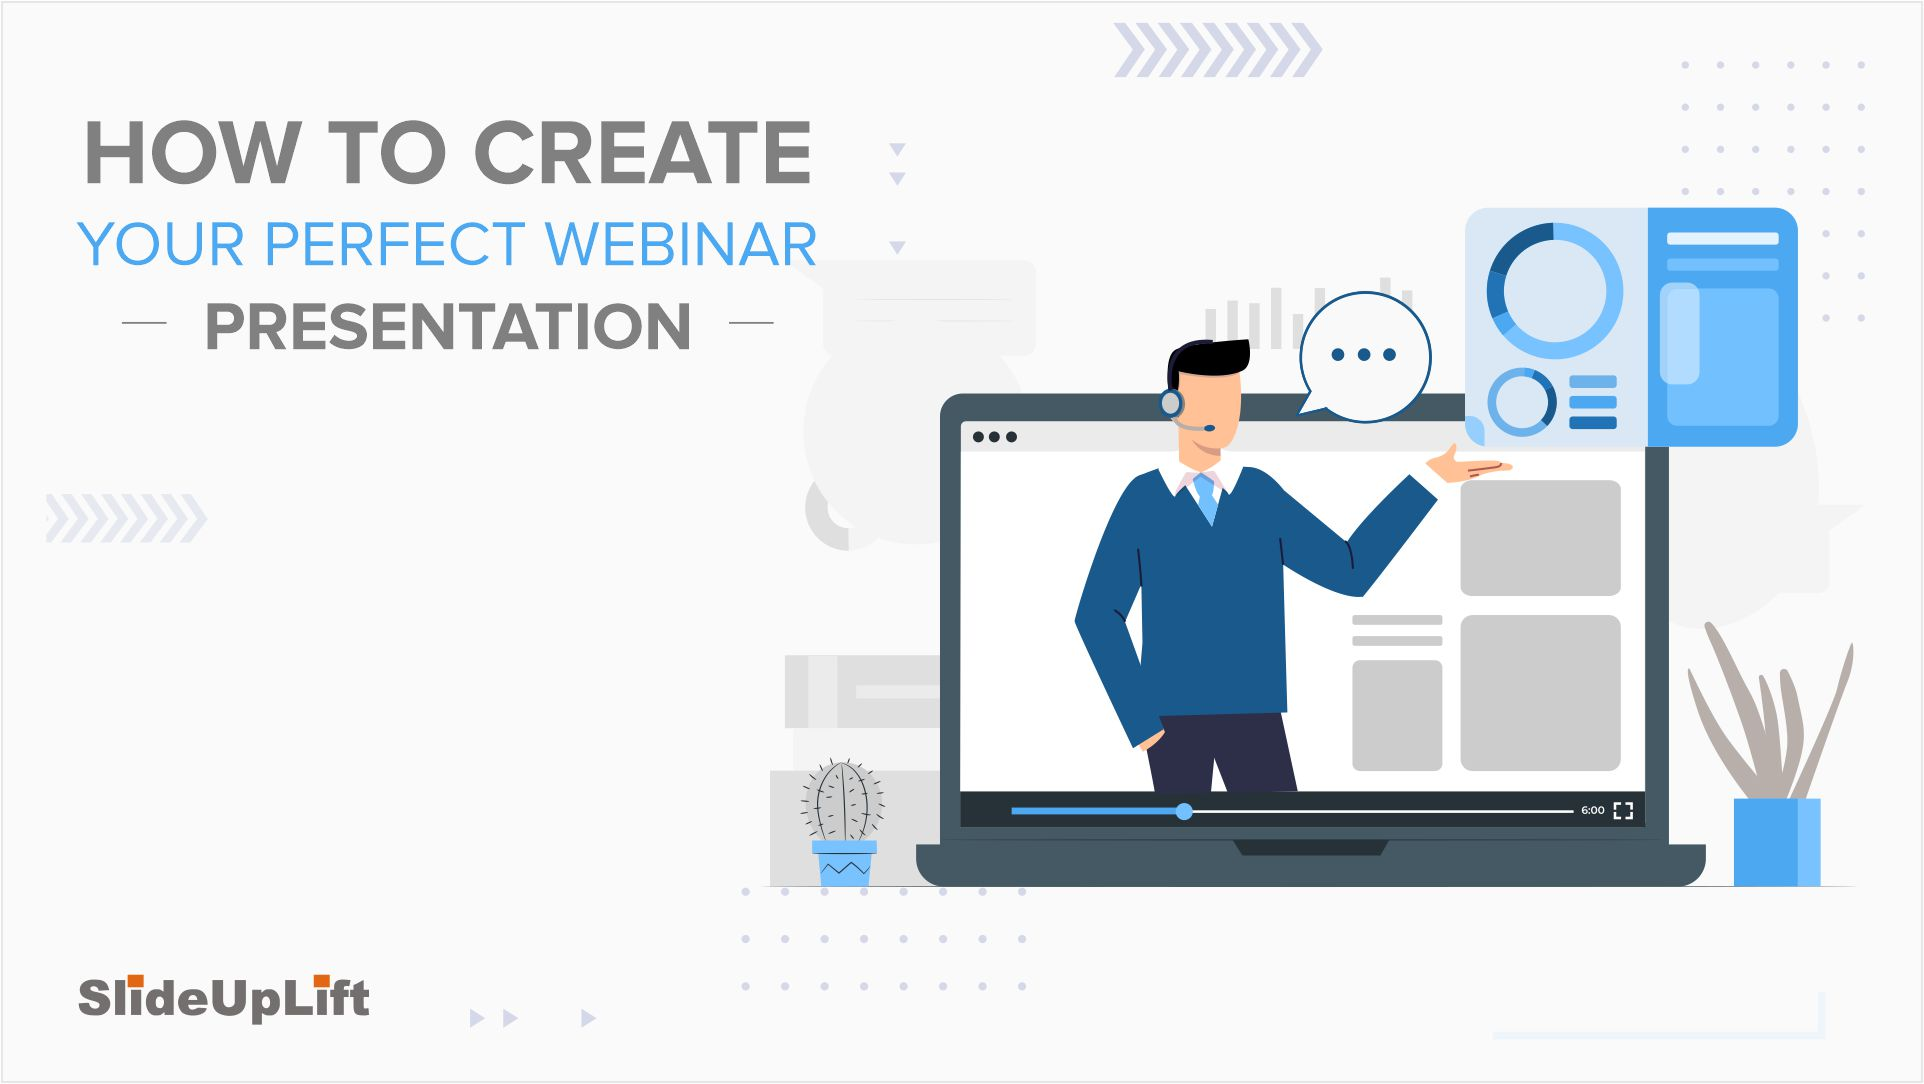 How To Create Your Perfect Webinar Presentation